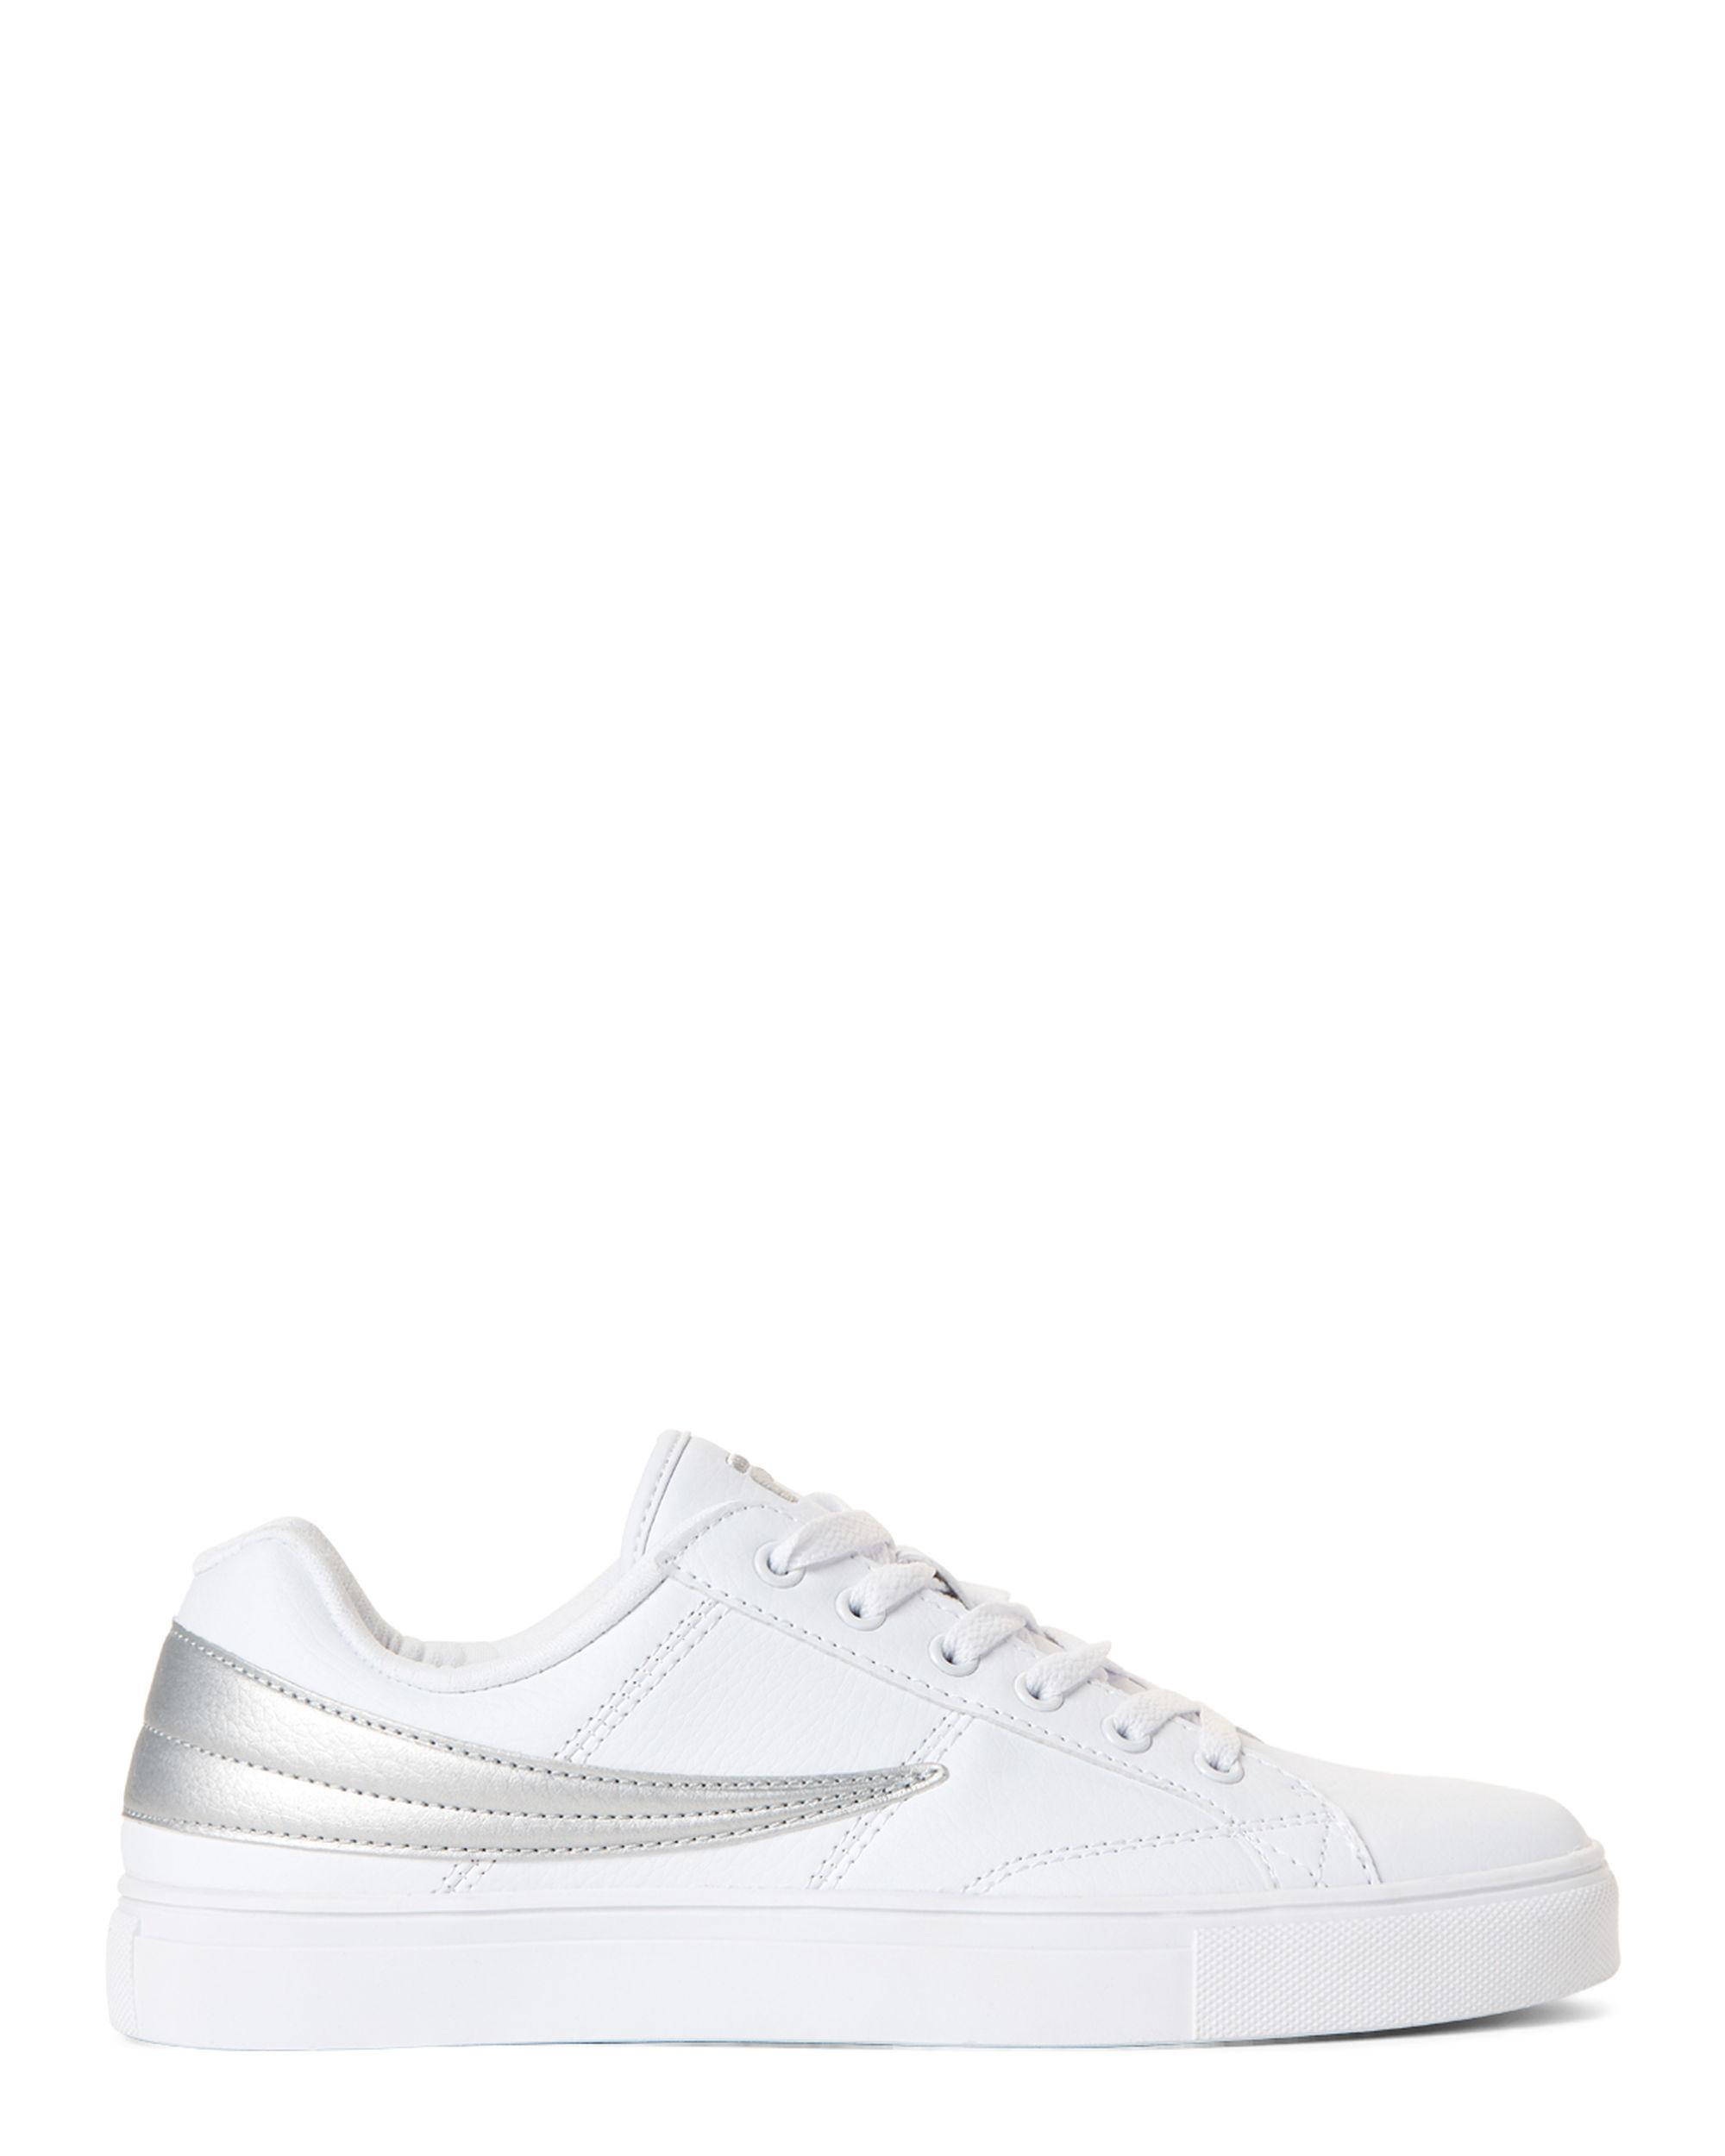 ac49bc34b951 Lyst - Fila White   Silver Smokescreen Low-top Sneakers in White